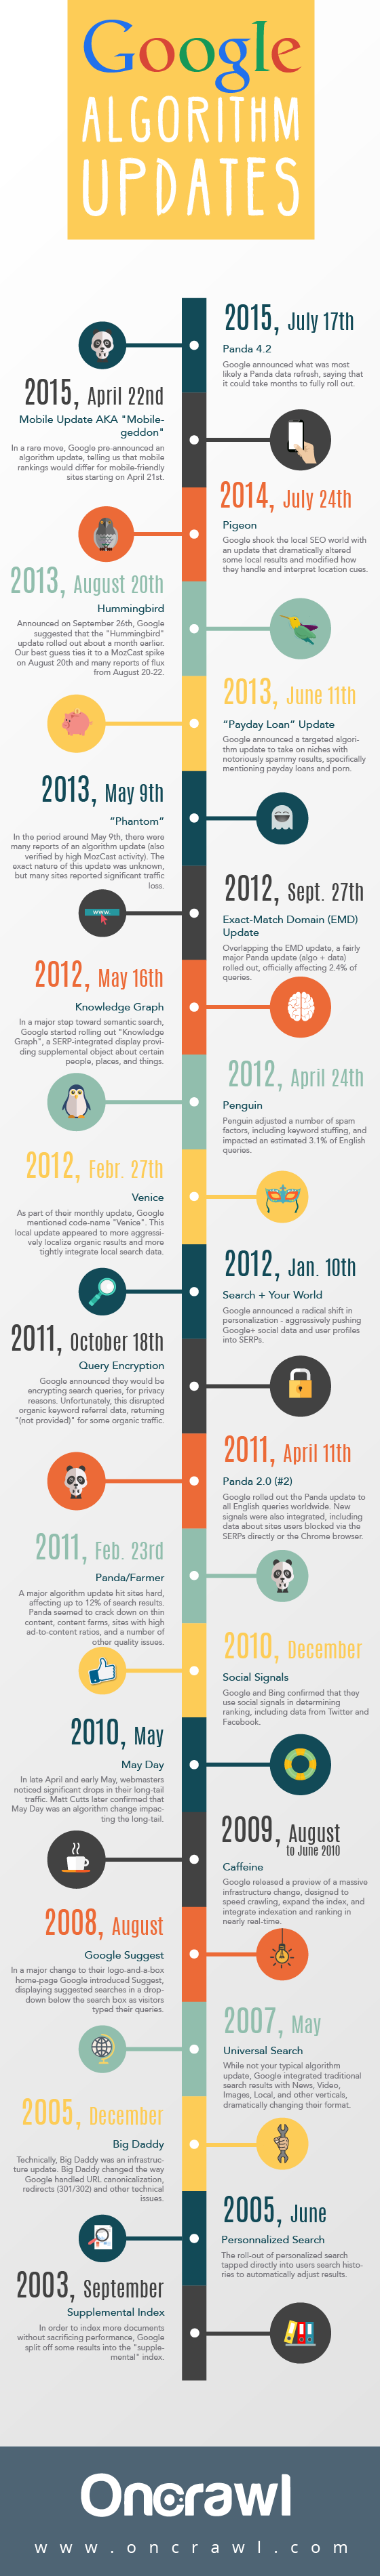 Infographic of Google's changes since 2000